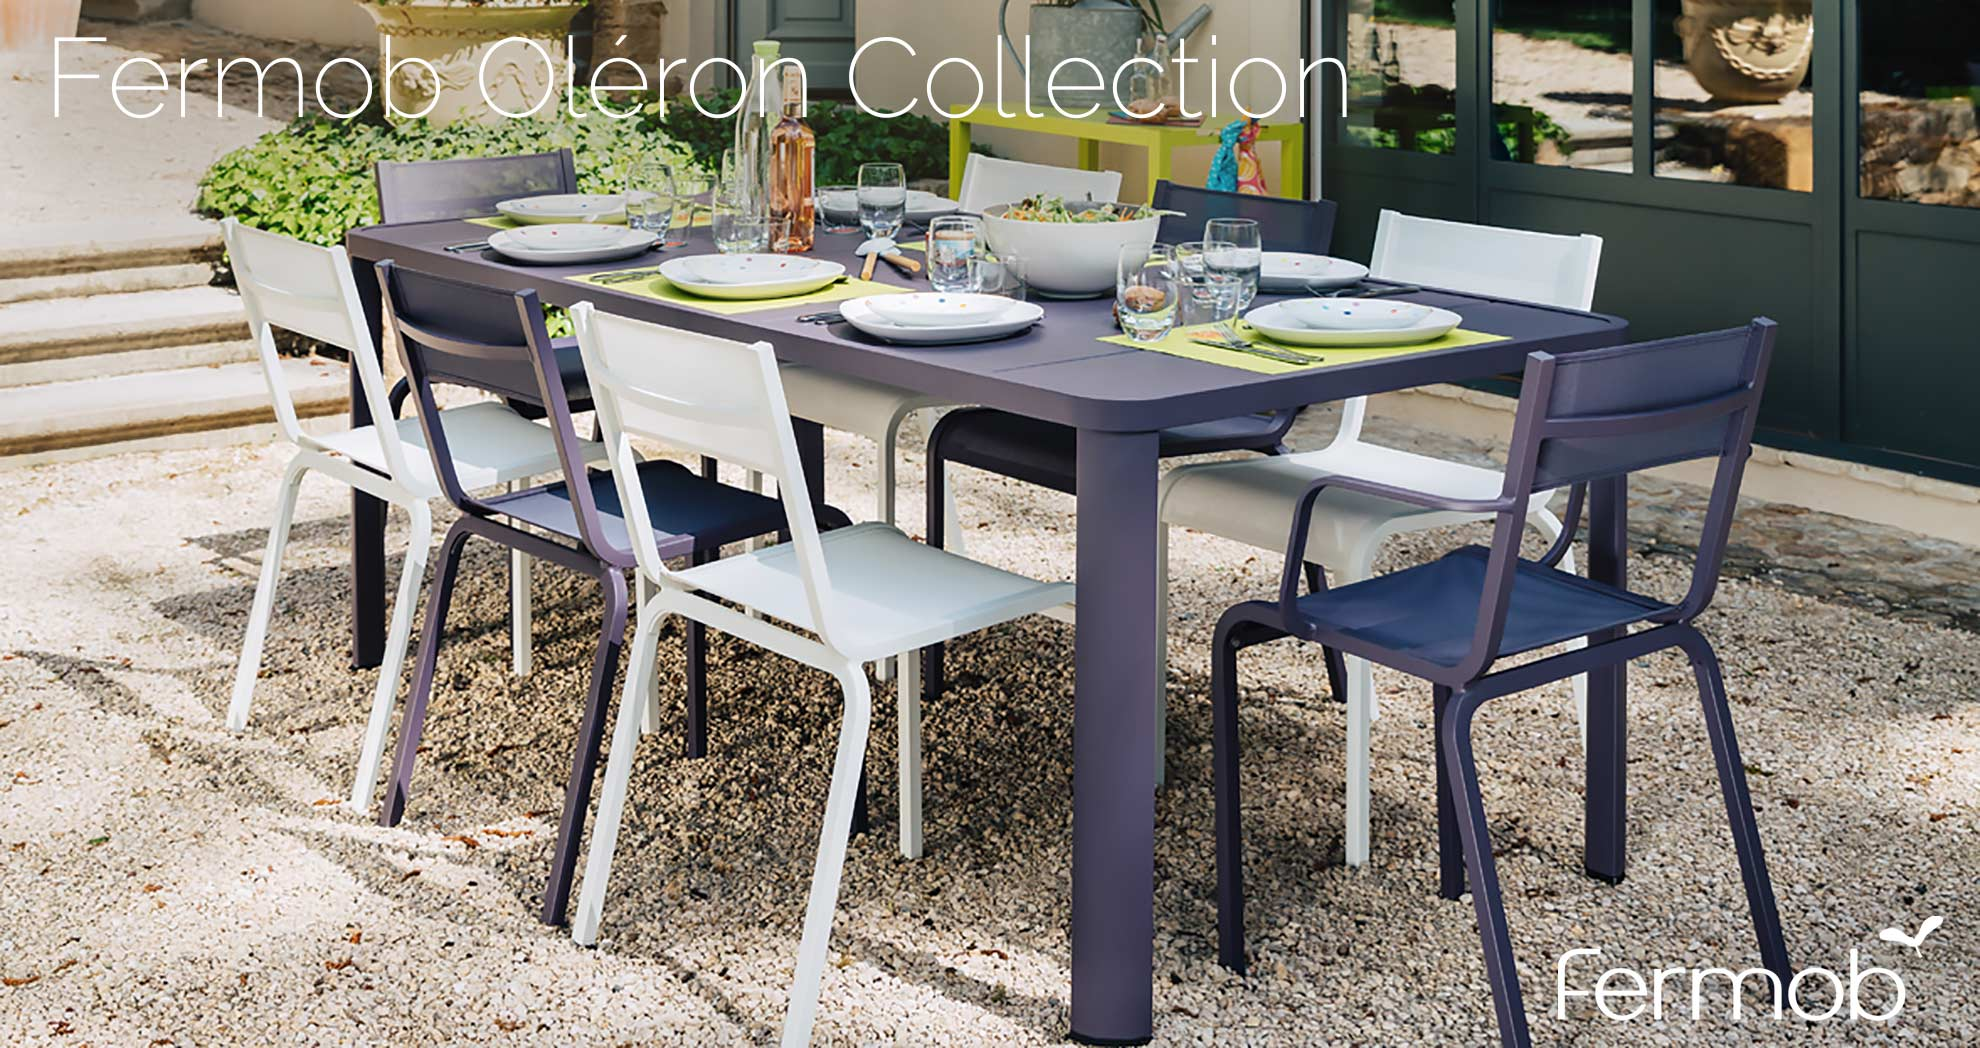 Fermob Oleron Collection